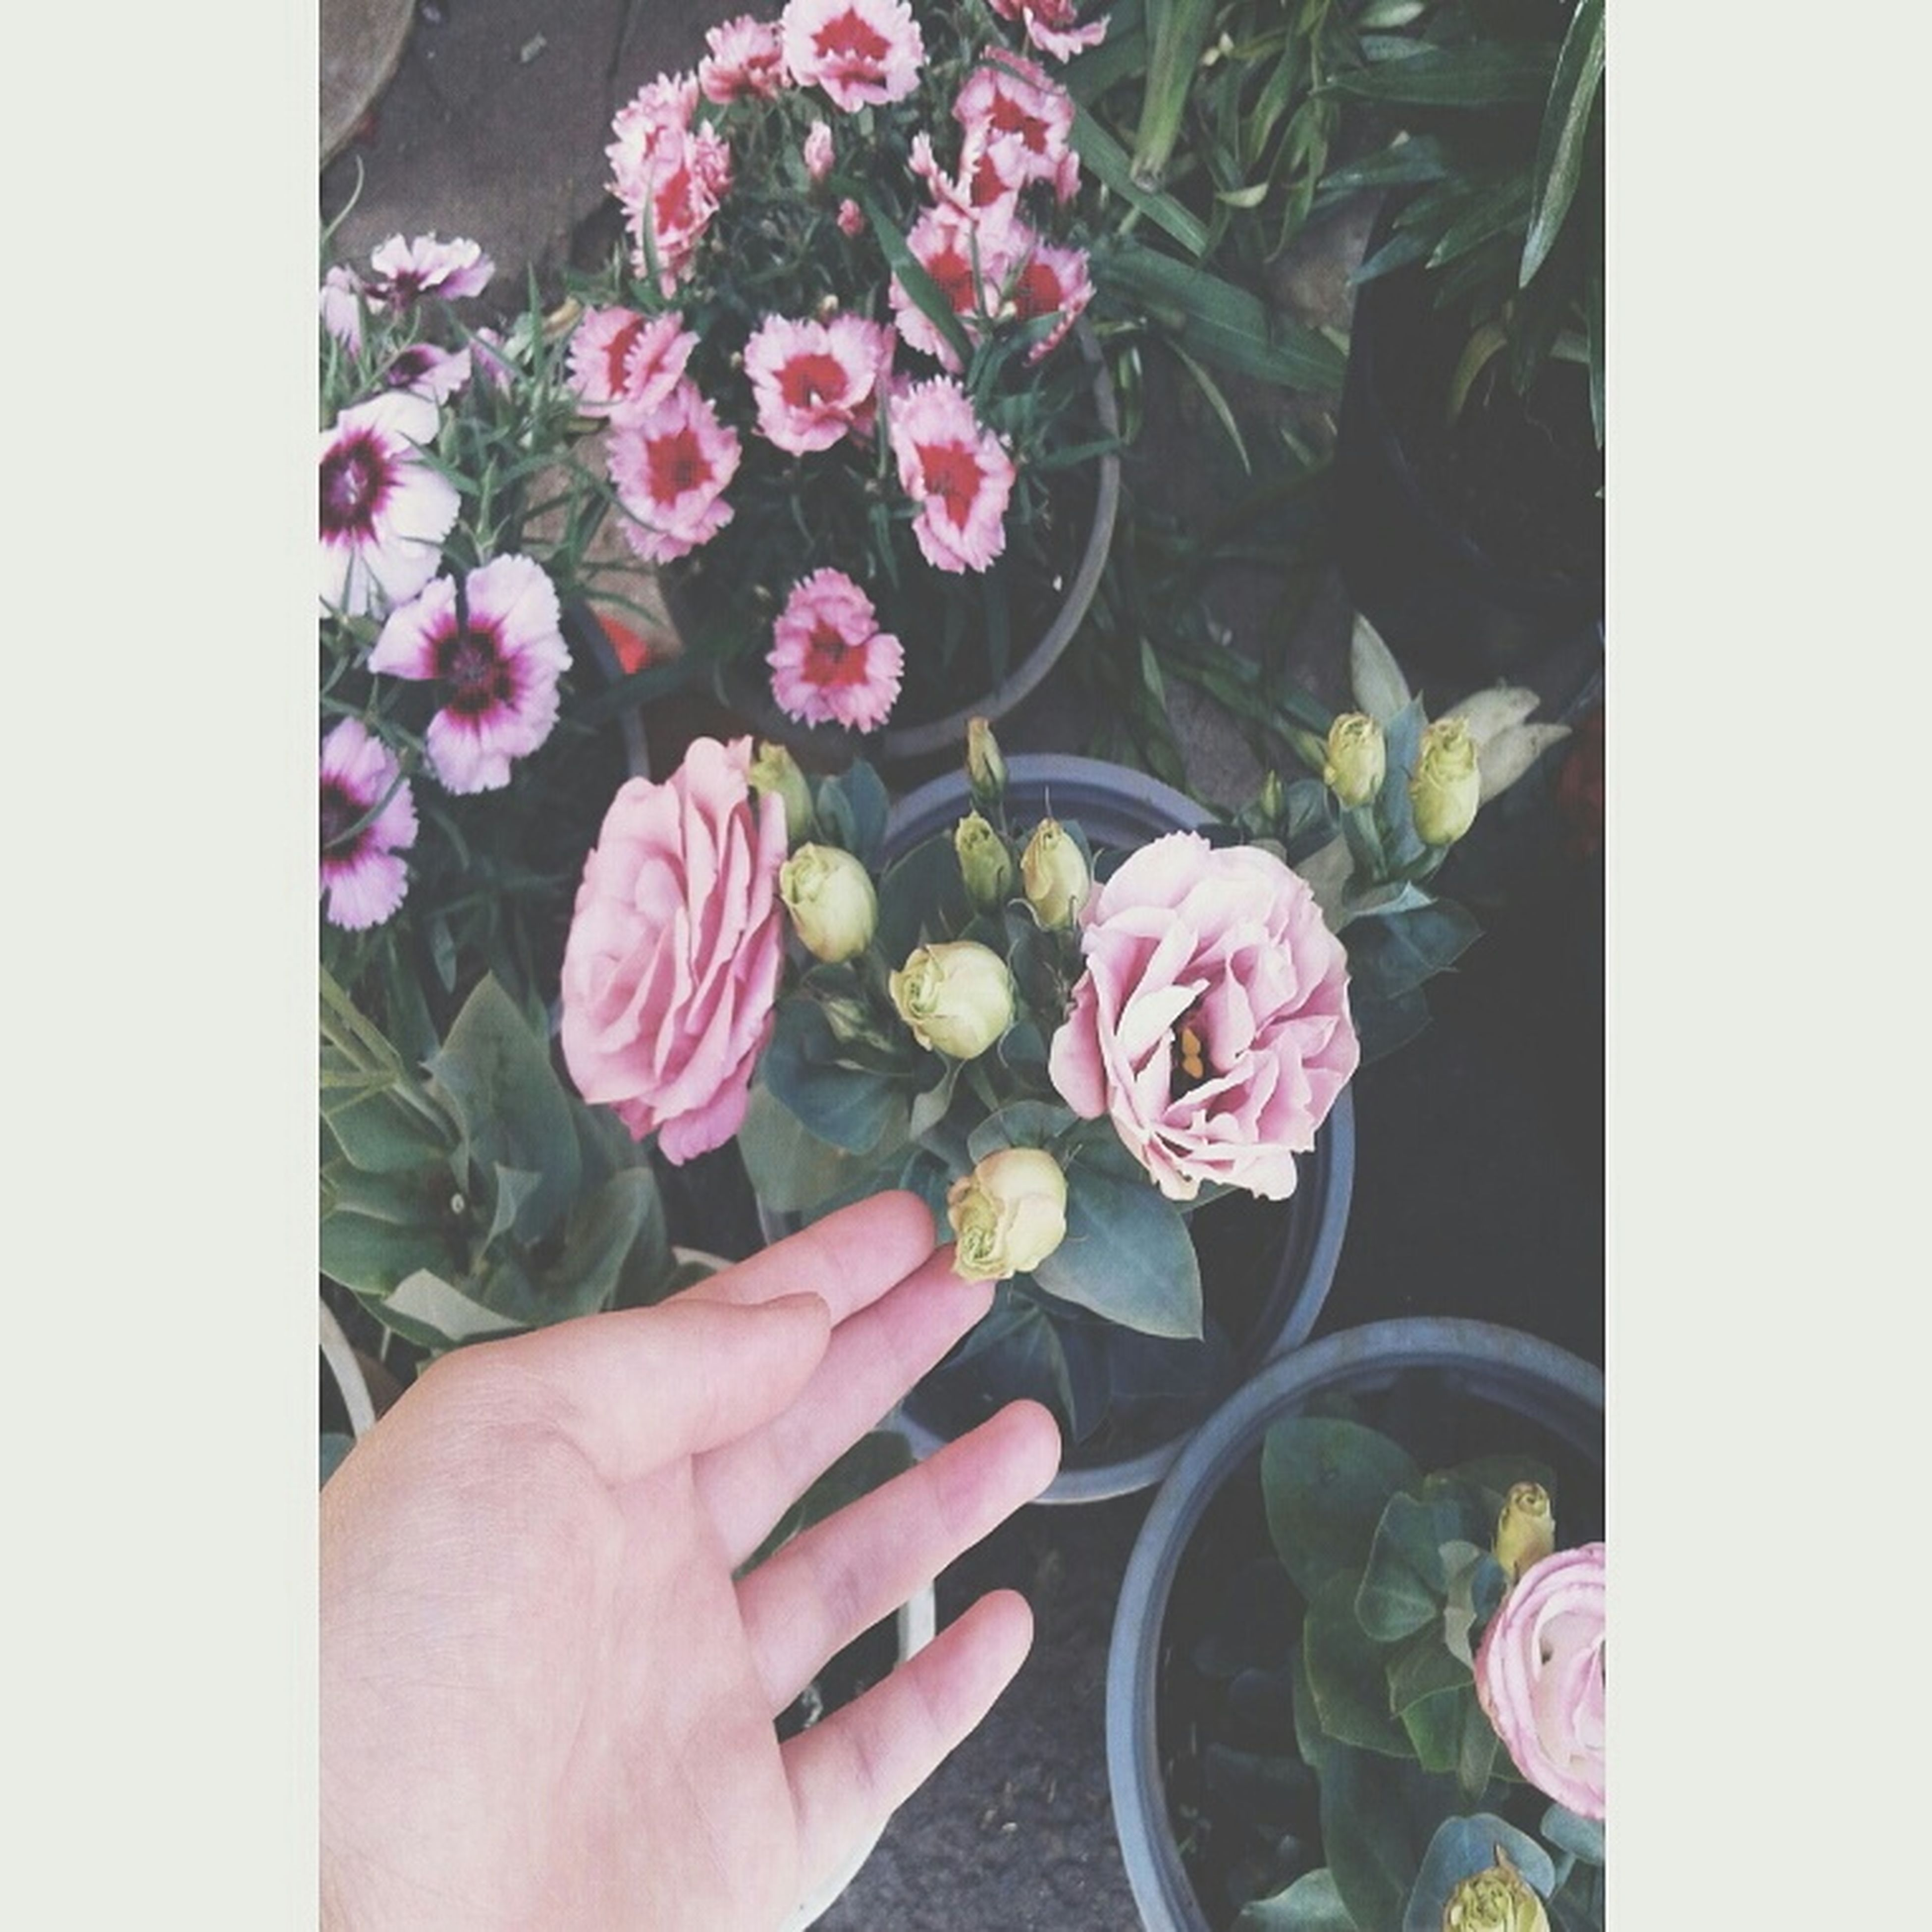 person, flower, holding, part of, cropped, freshness, personal perspective, unrecognizable person, transfer print, fragility, lifestyles, human finger, auto post production filter, plant, petal, close-up, leisure activity